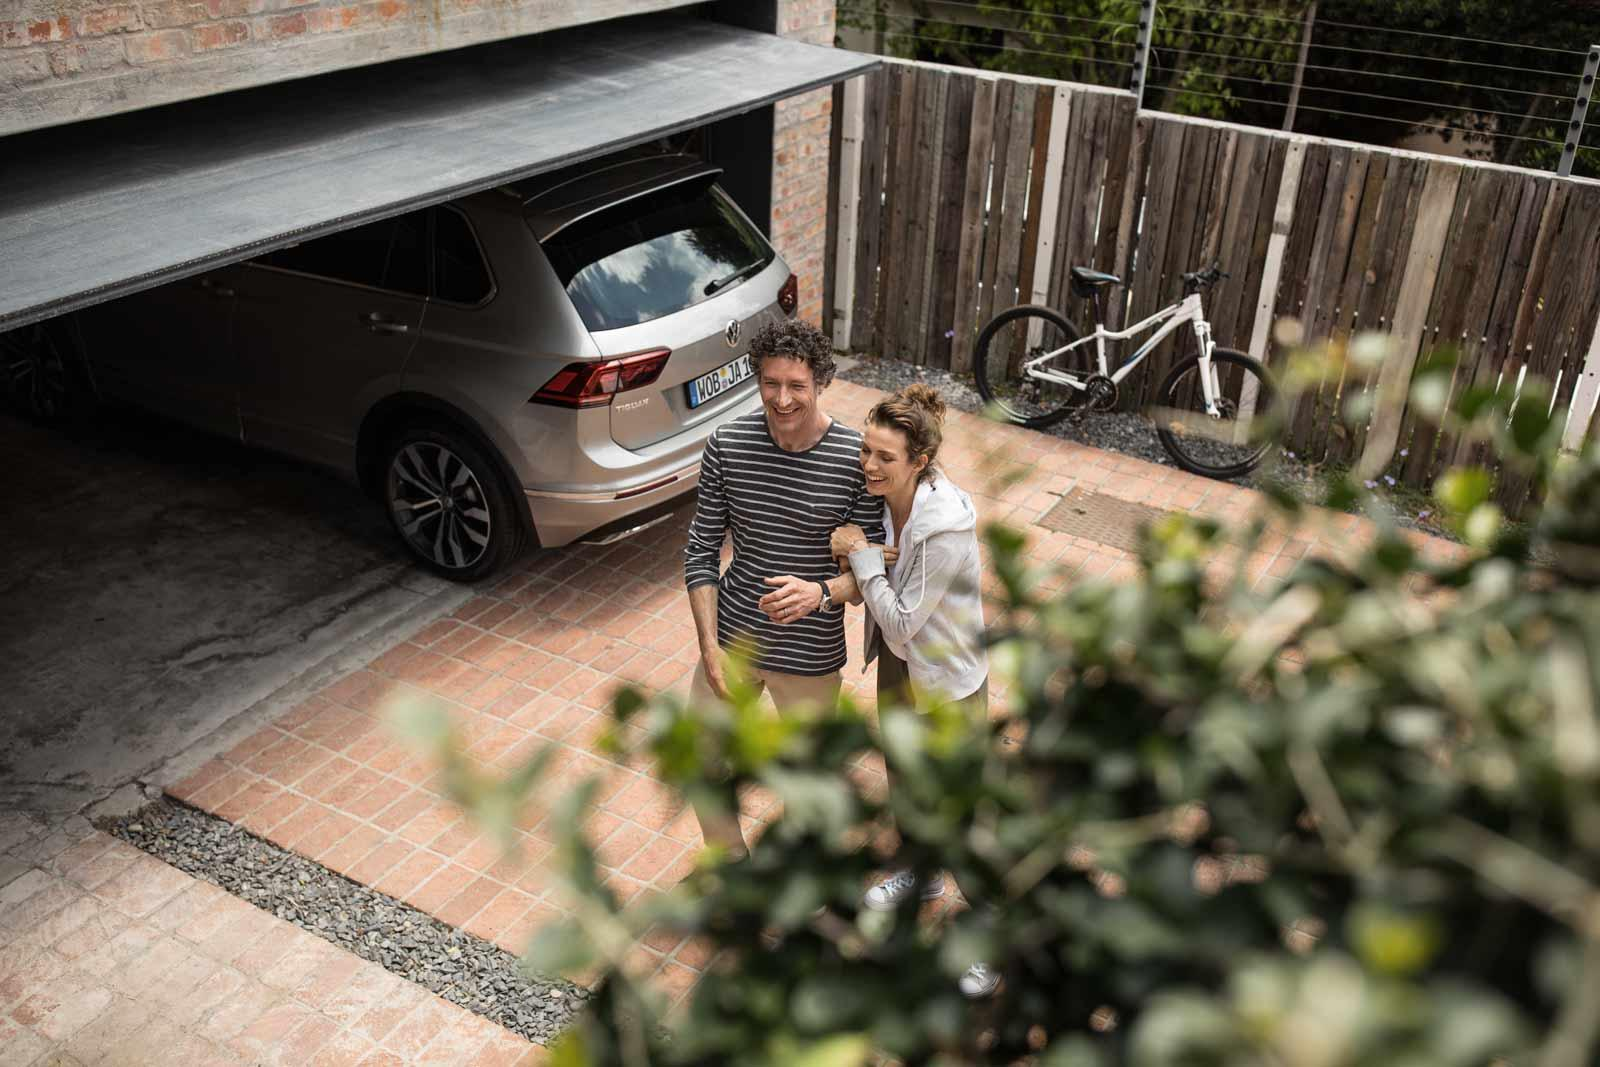 couple-standing-next-to-car-garage-laughing